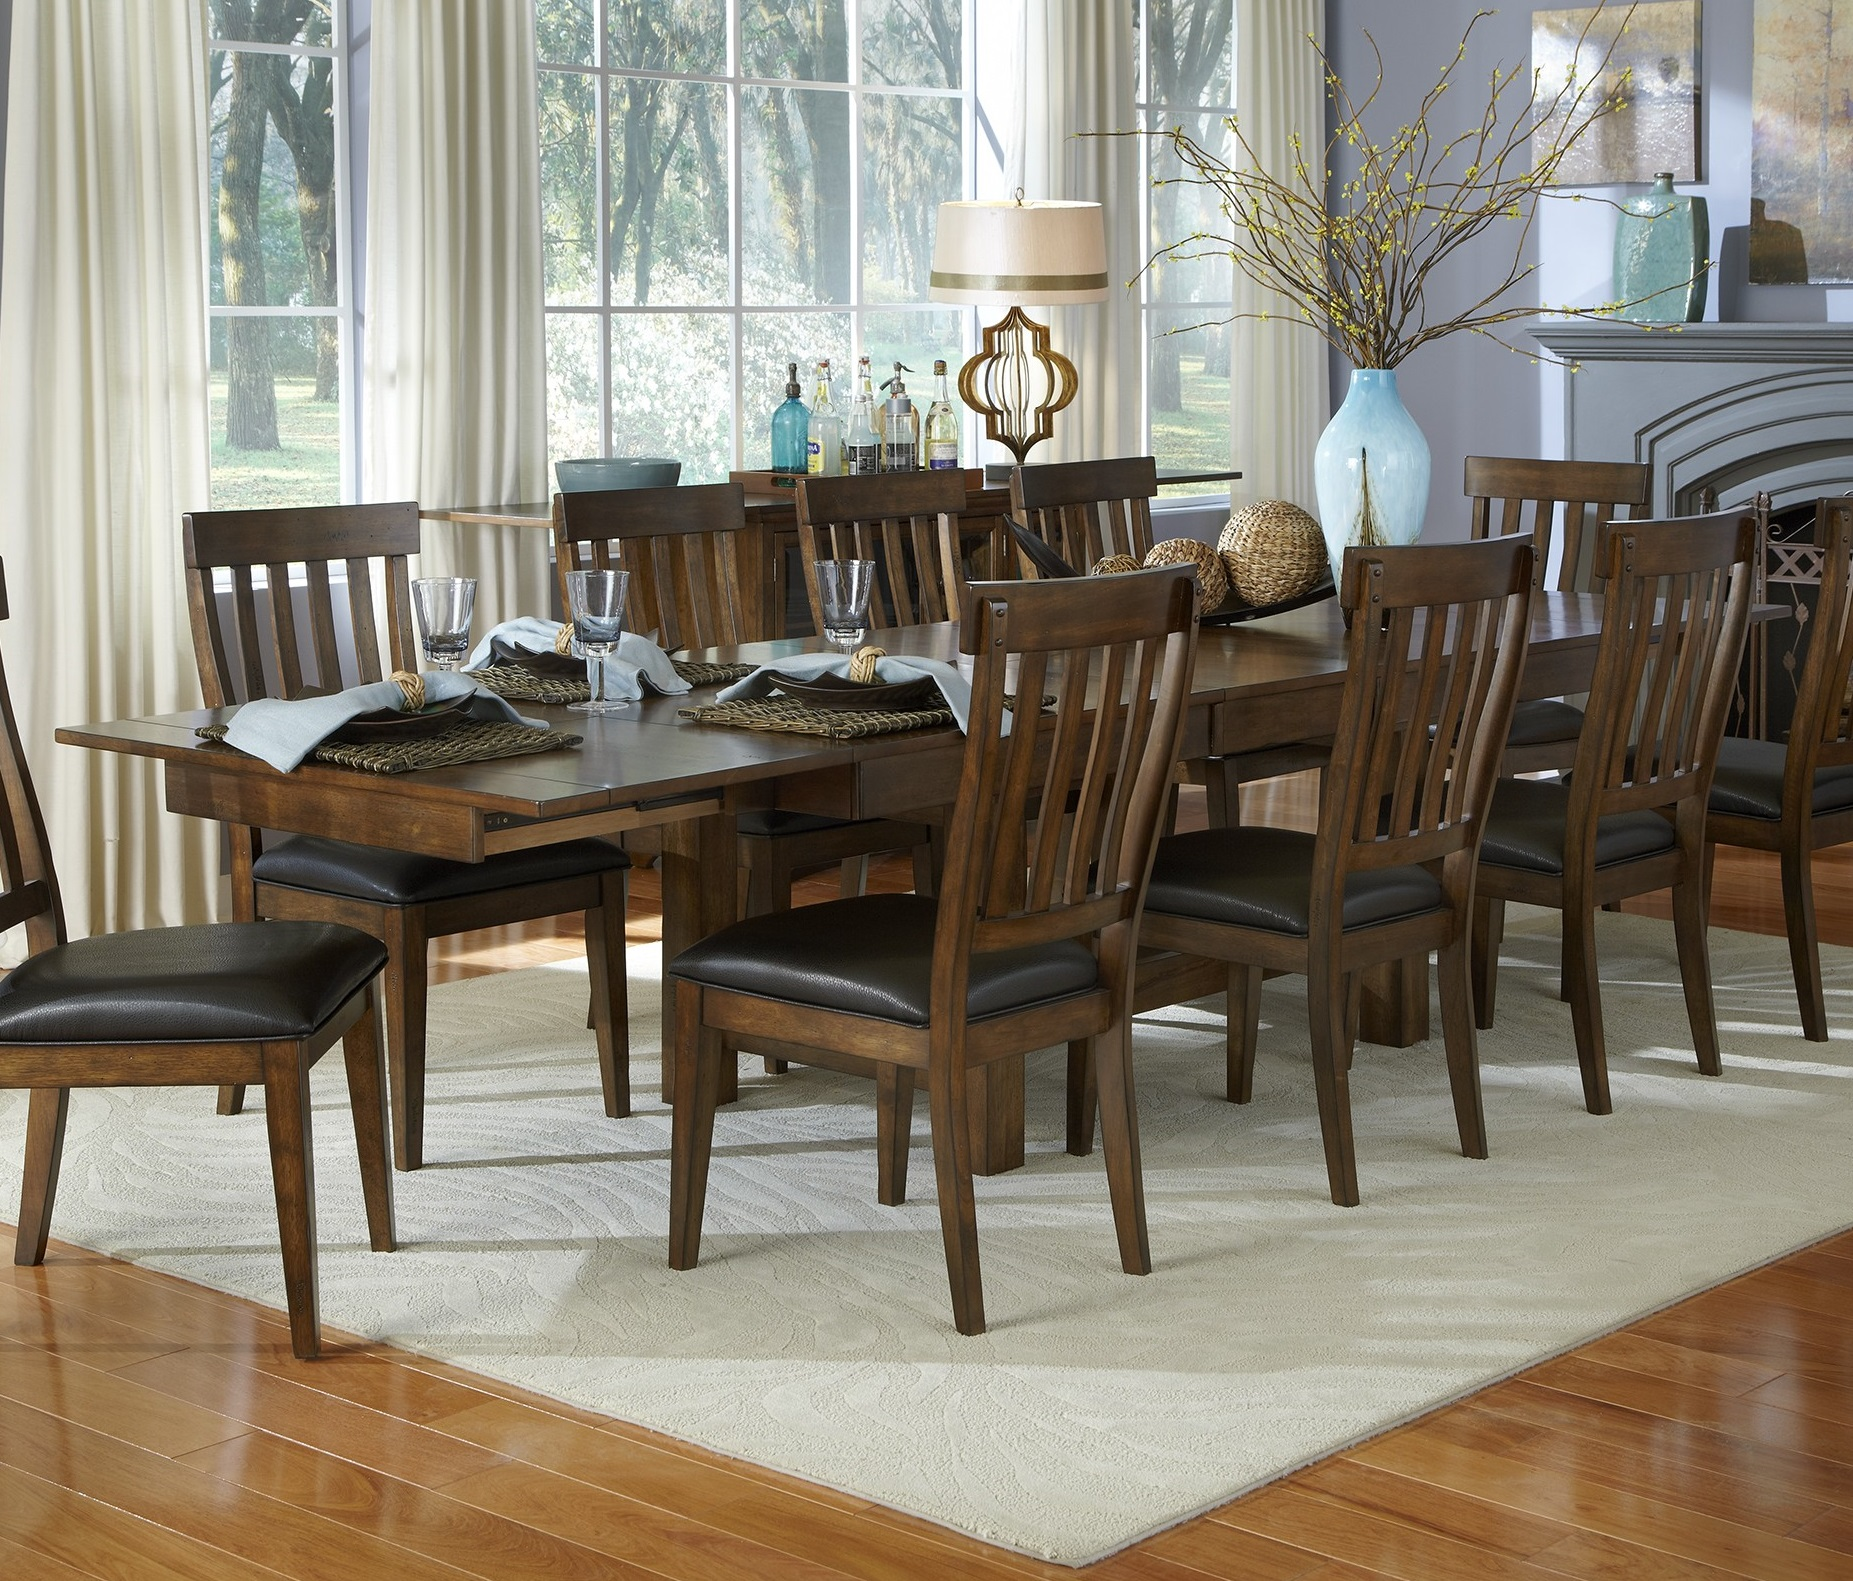 132 Solid Wood Dining Set, Solid Wood Dining Room Sets